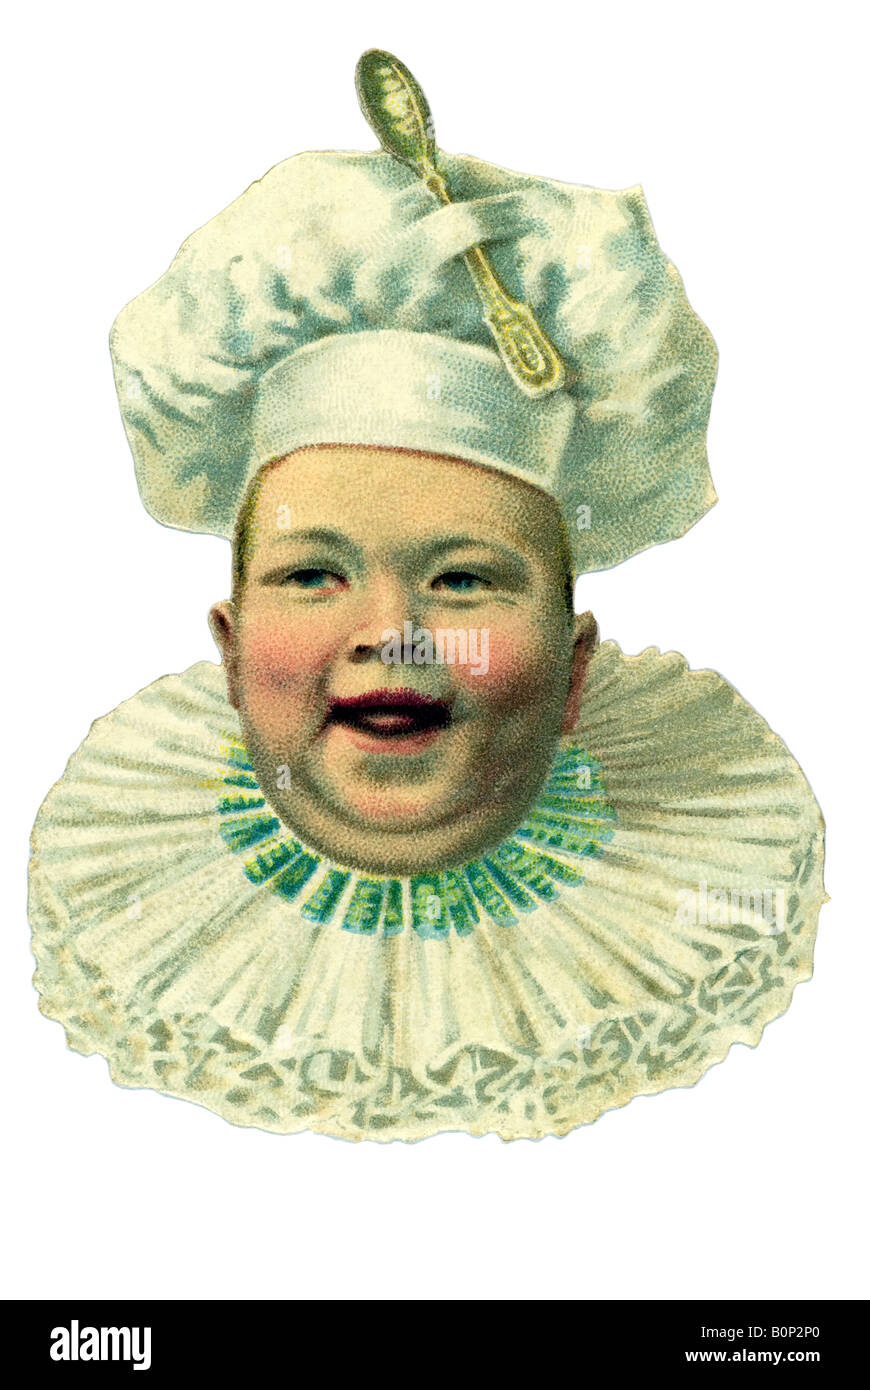 ancient emotional baby head open mouth smiling toby collar ruff made of lace cook hat spoon on top 19th century - Stock Image